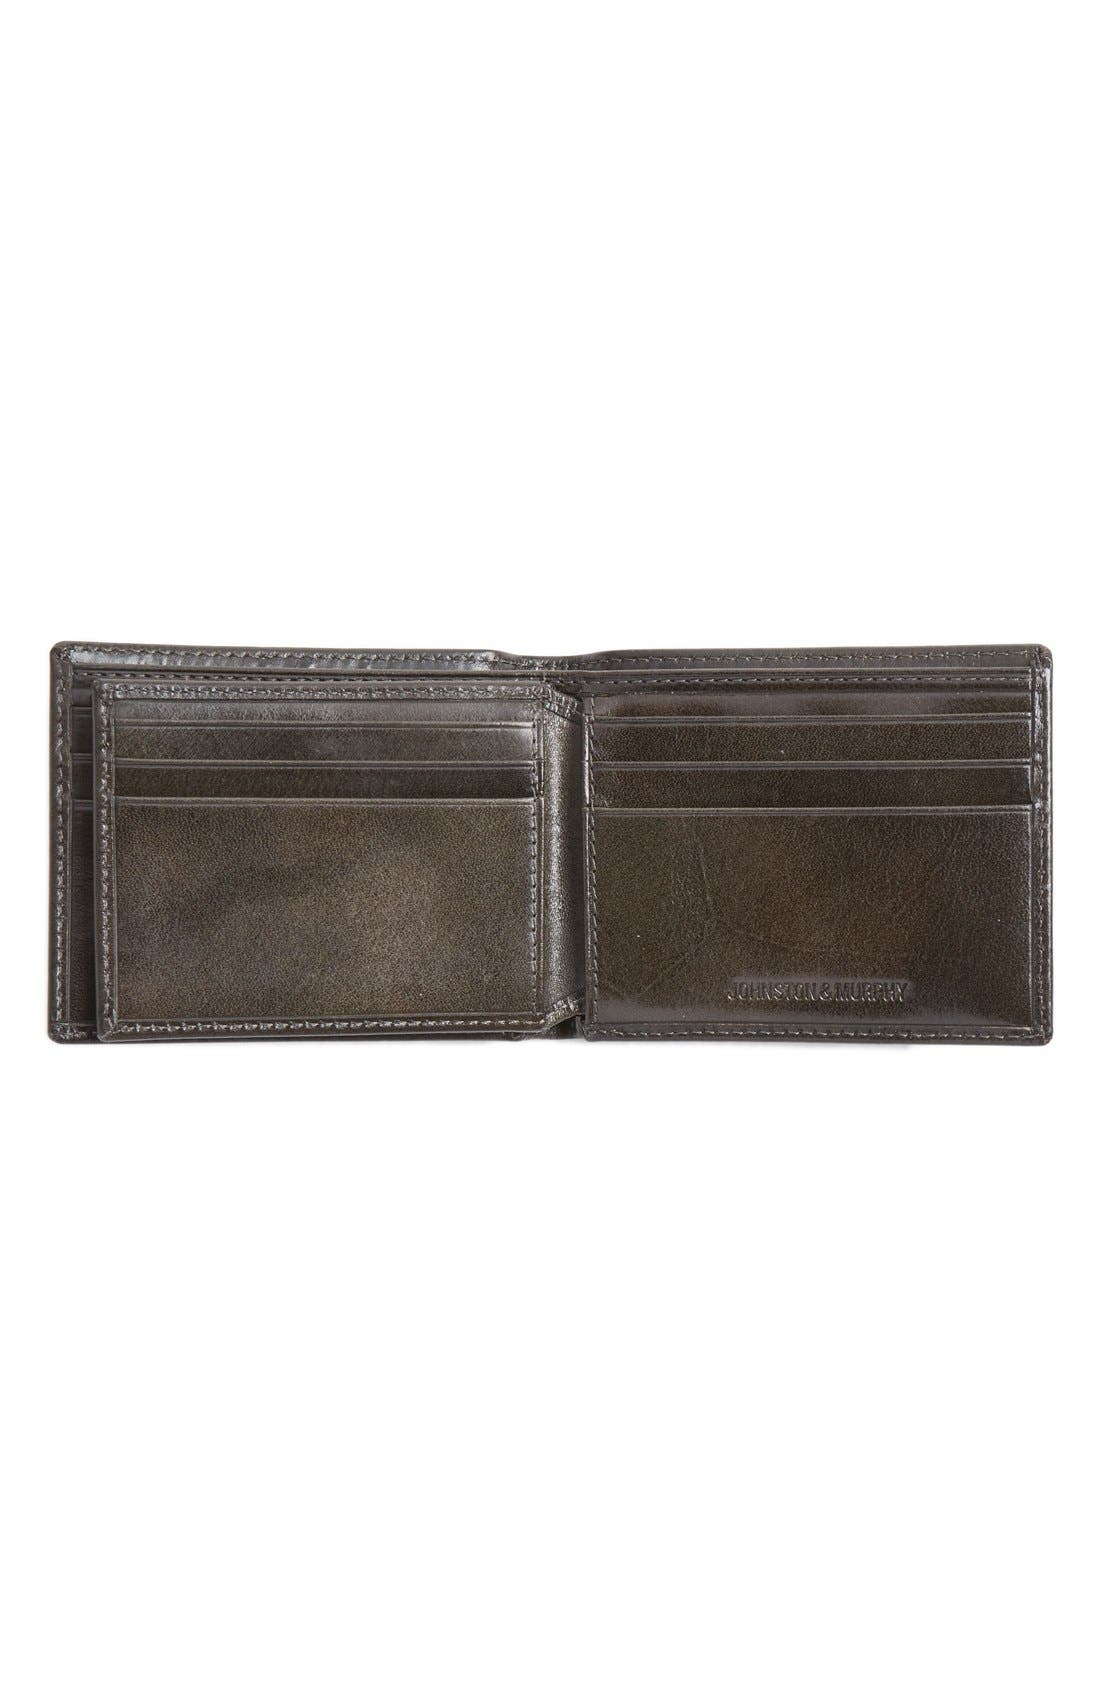 Flip Billfold Leather Wallet,                             Alternate thumbnail 3, color,                             020